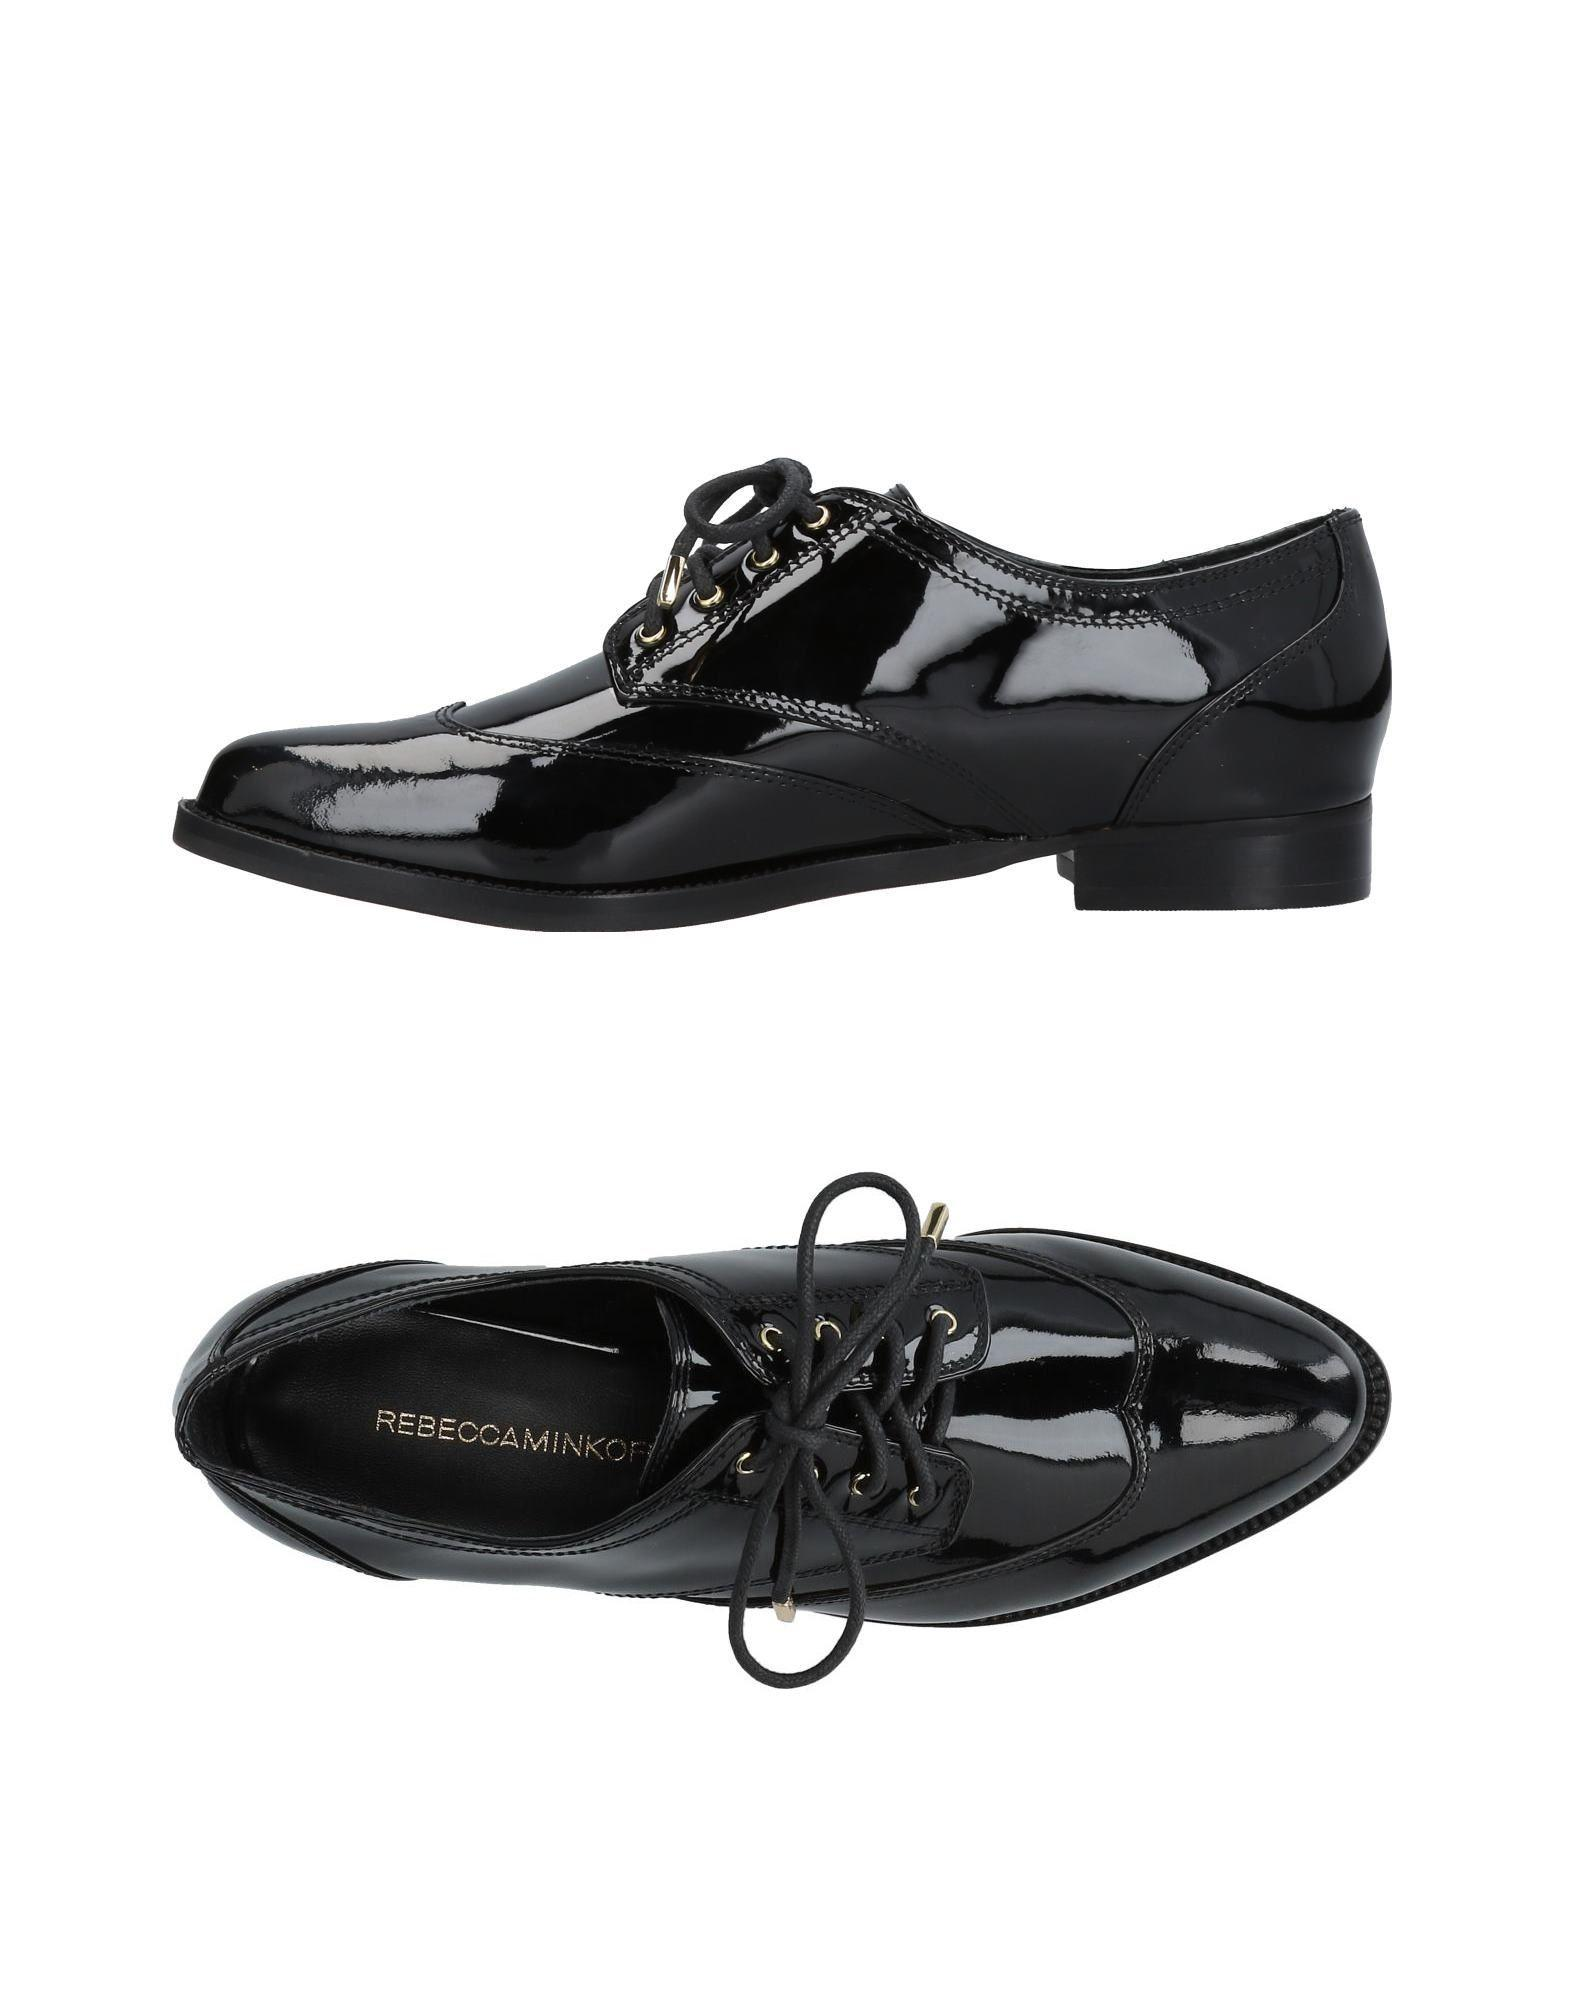 Rebecca Minkoff Laced Shoes In Black